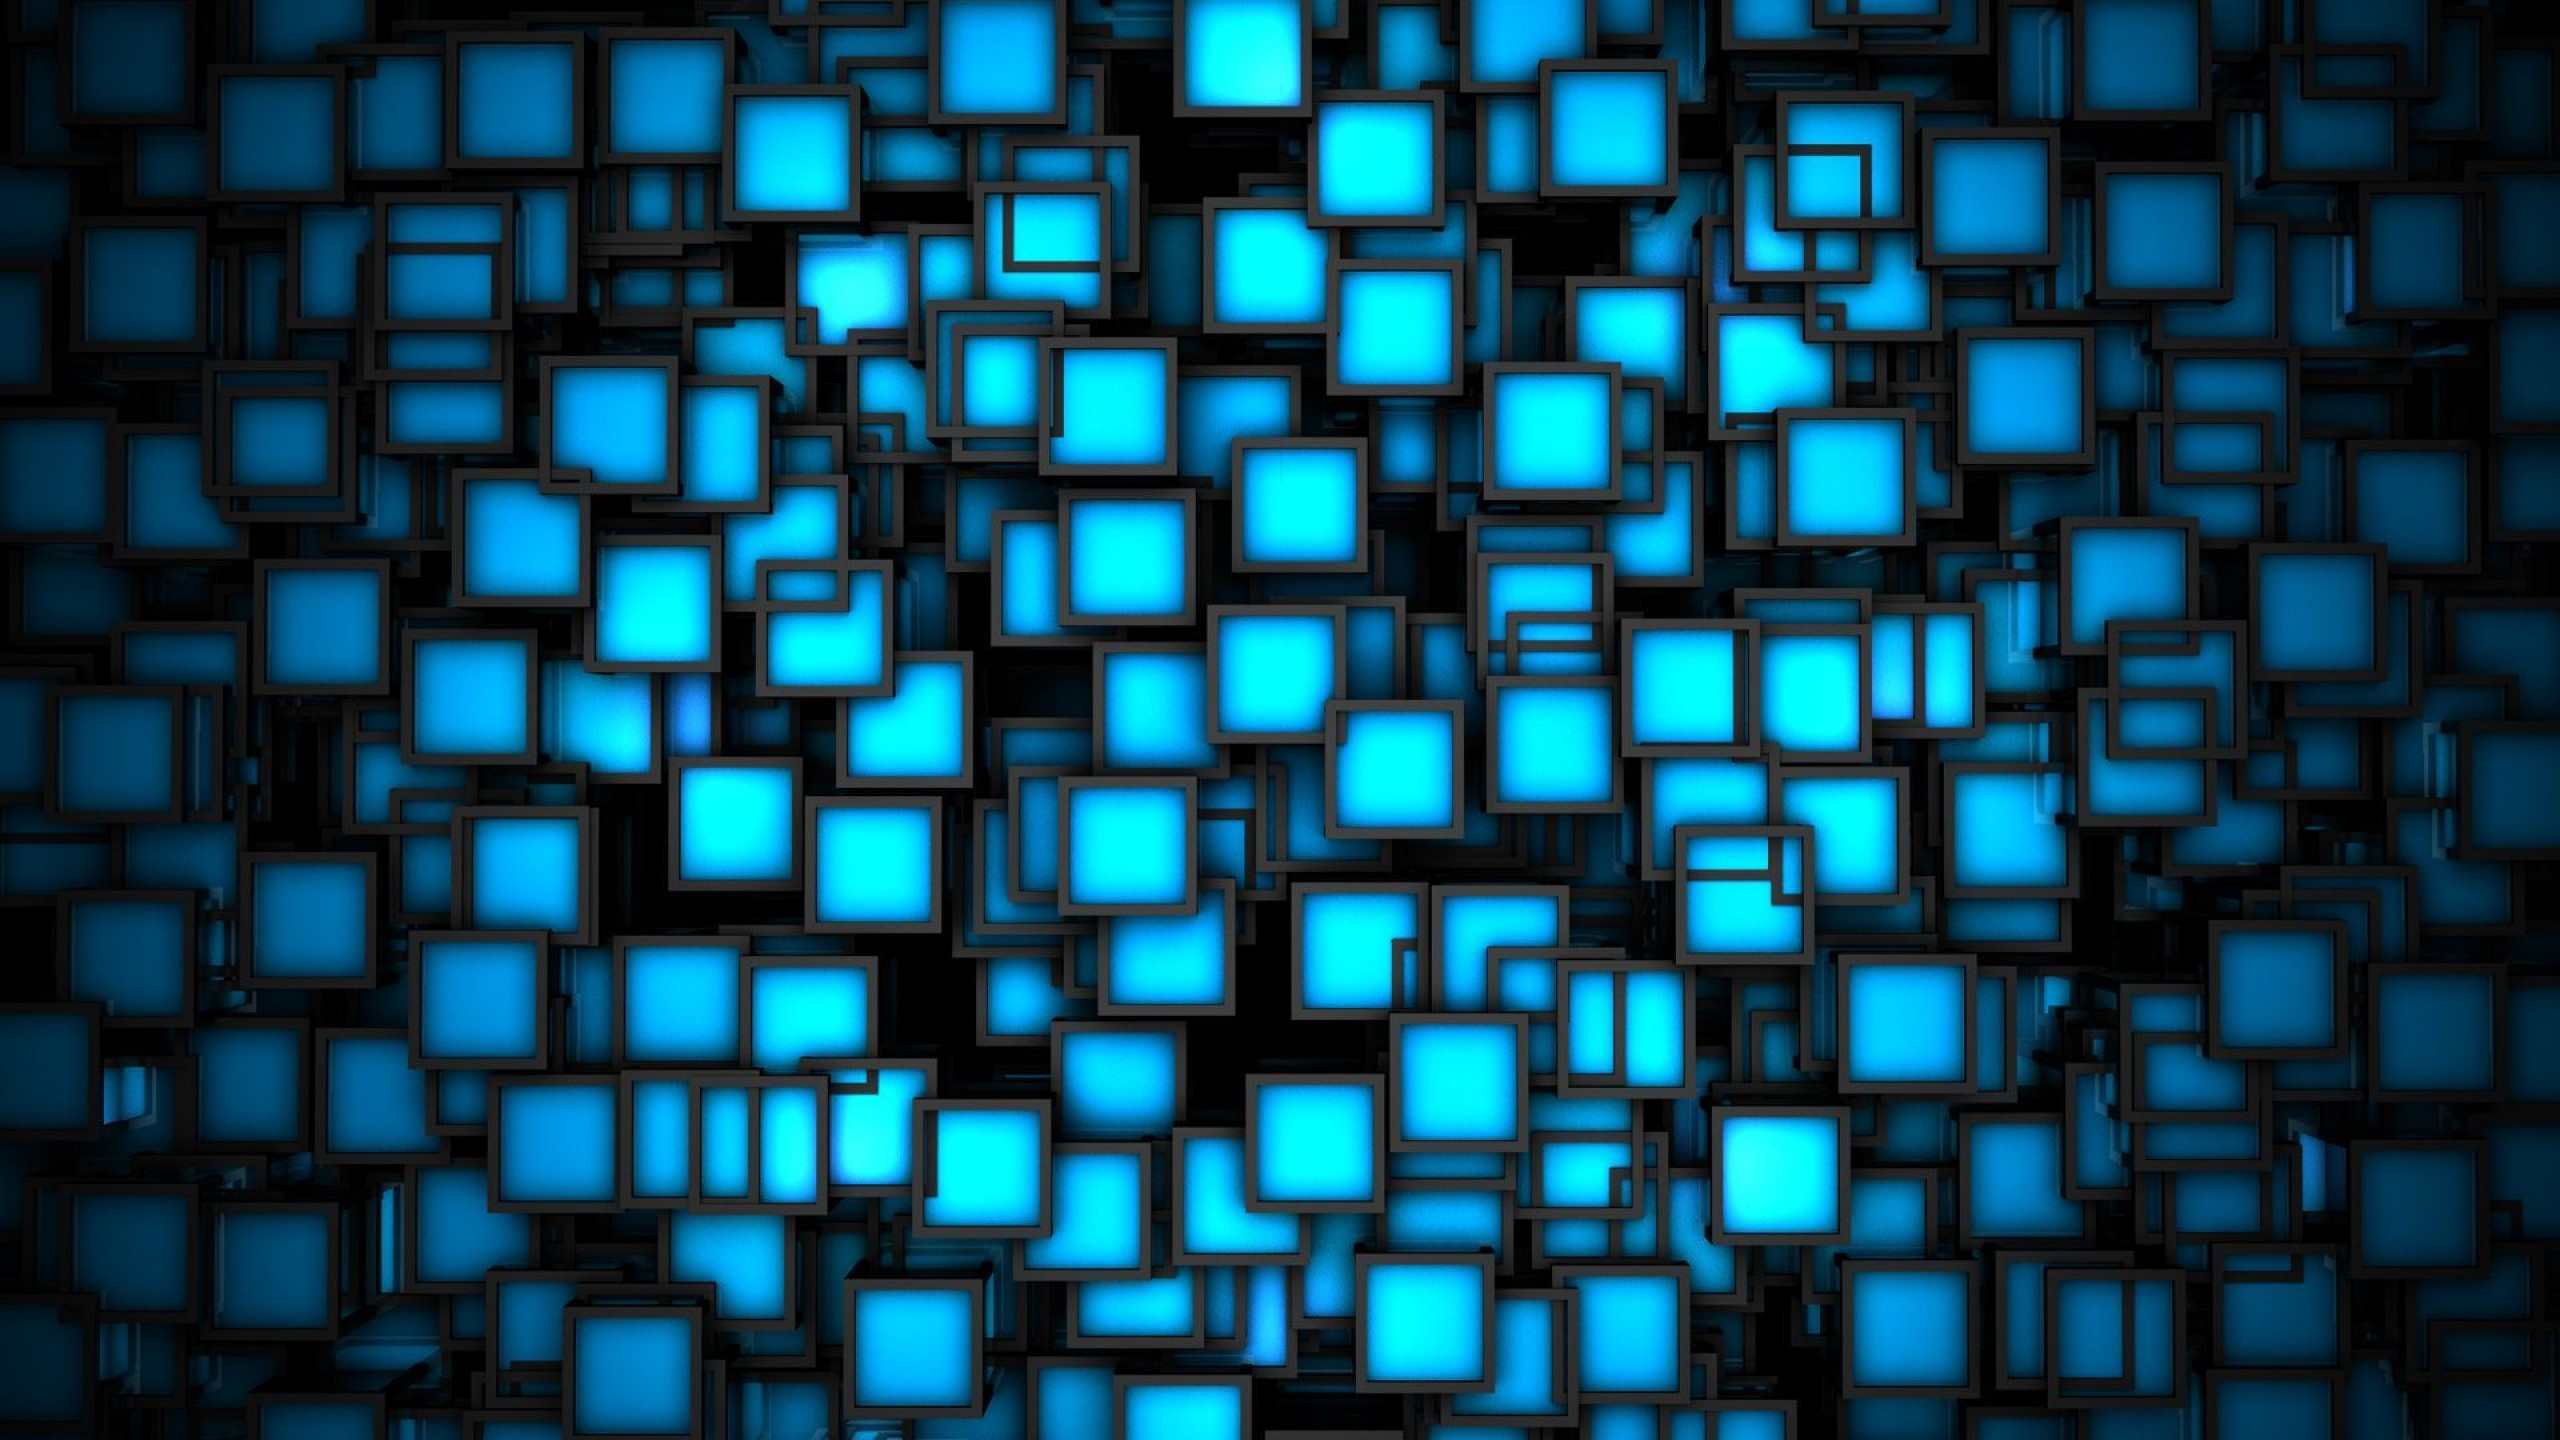 3D Blue Wallpaper